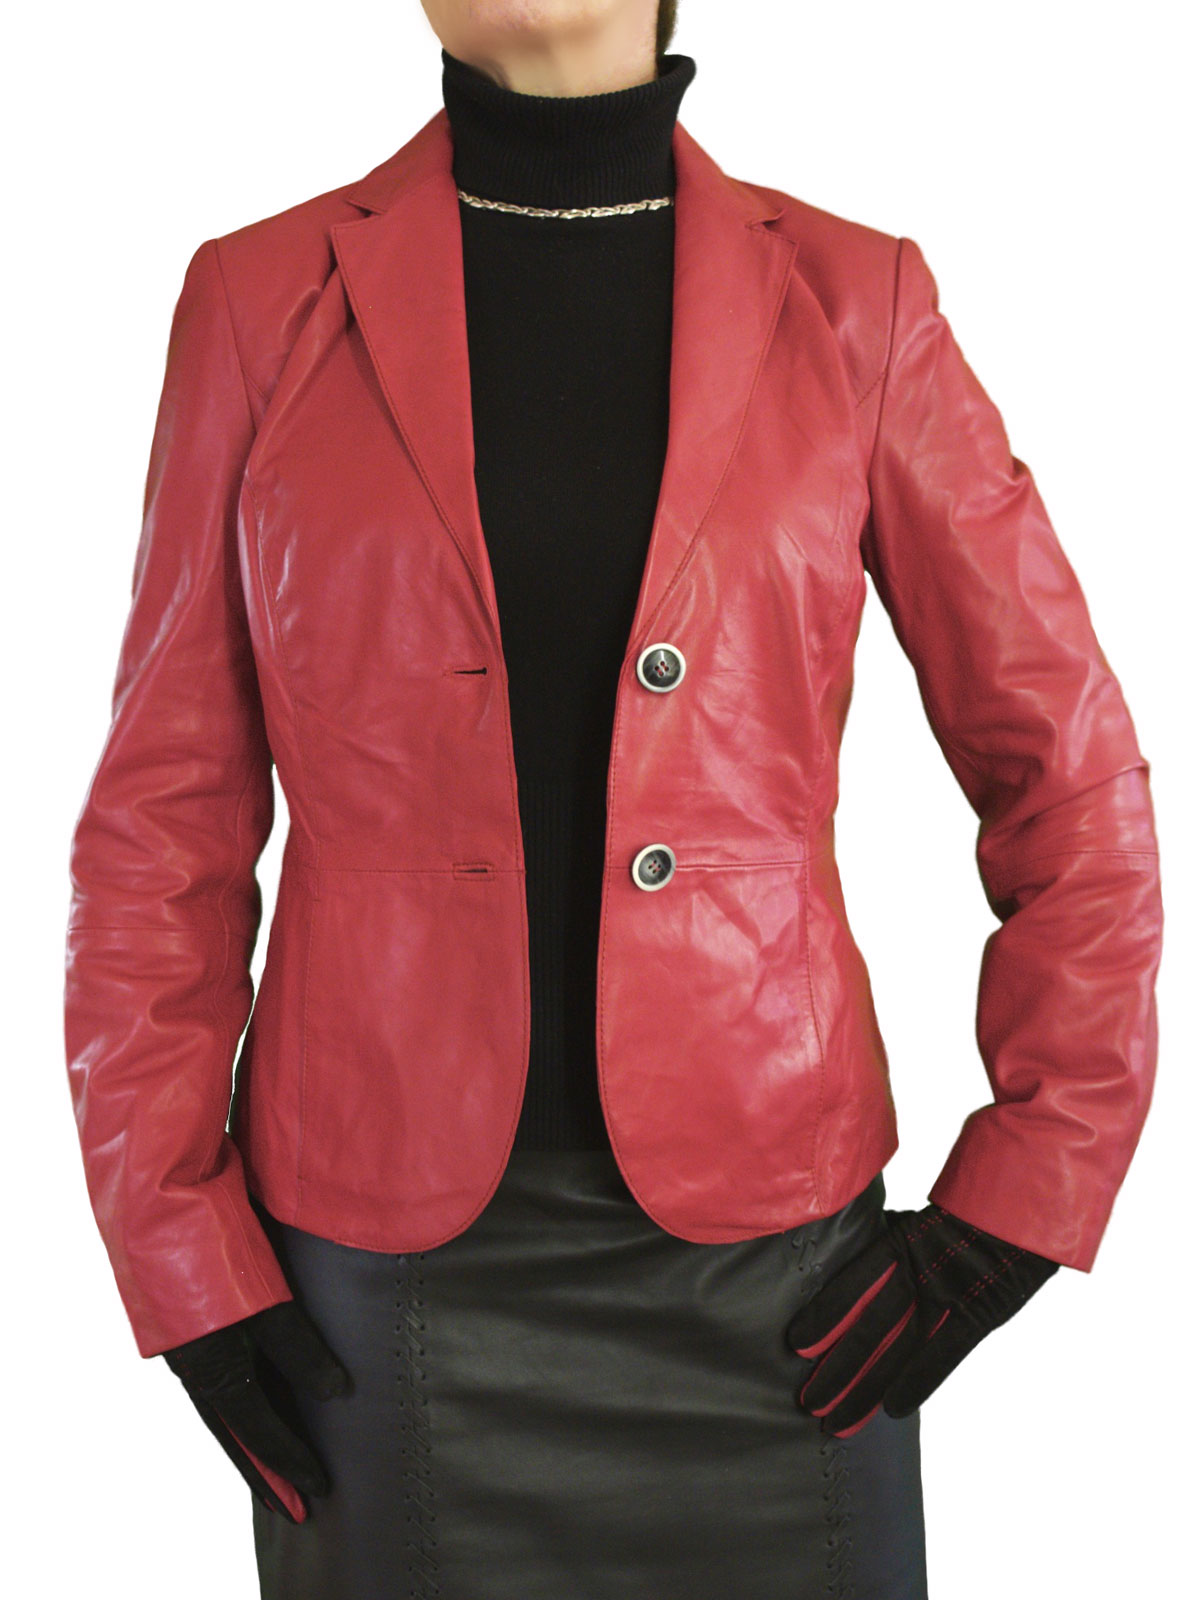 Womens Leather Jacket Blazer, red